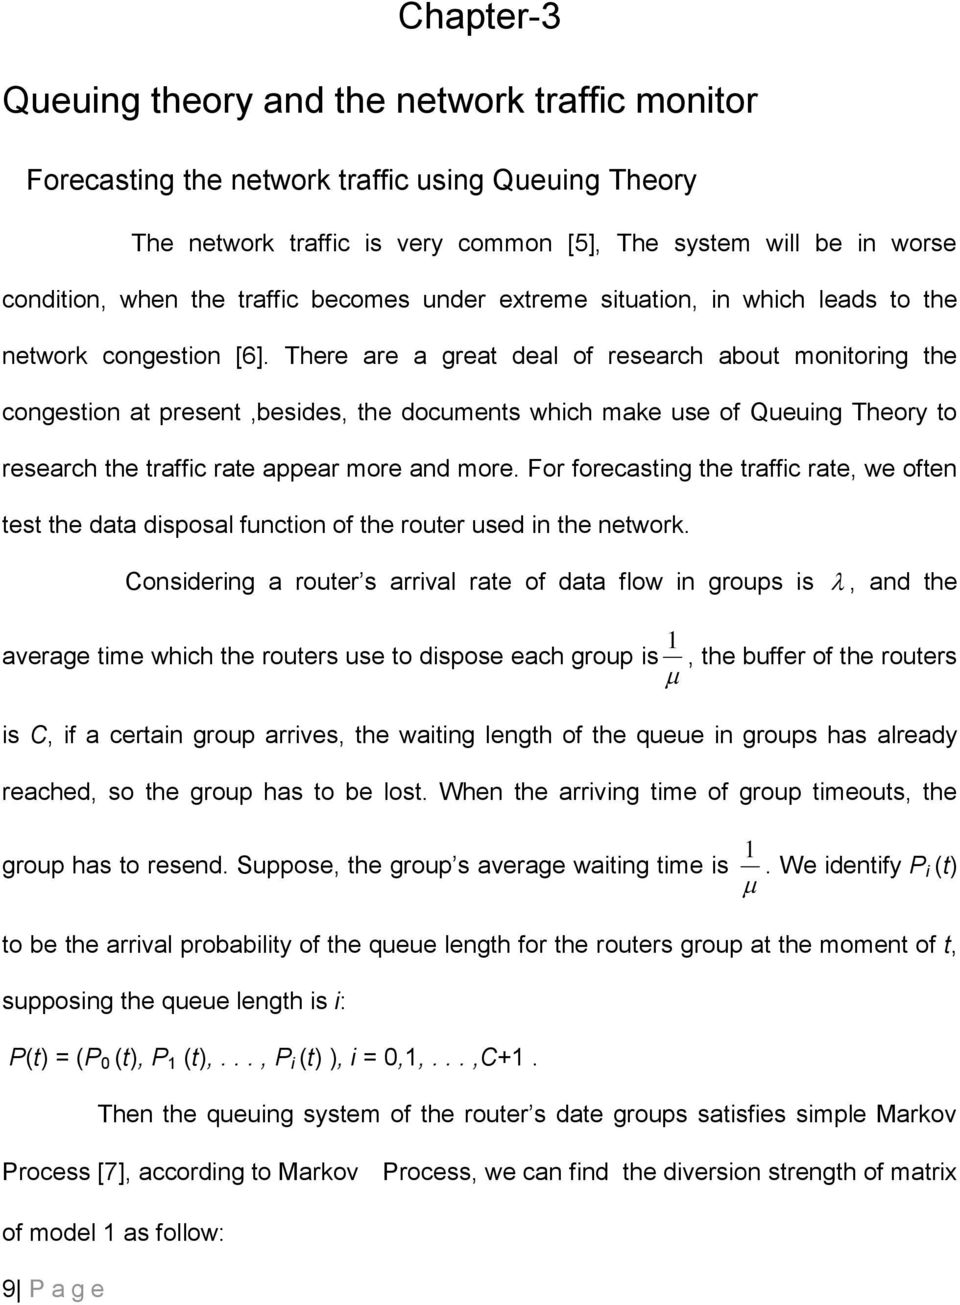 There are a great deal of research about moitorig the cogestio at preset,besides, the documets which mae use of Queuig Theory to research the traffic rate appear more ad more.